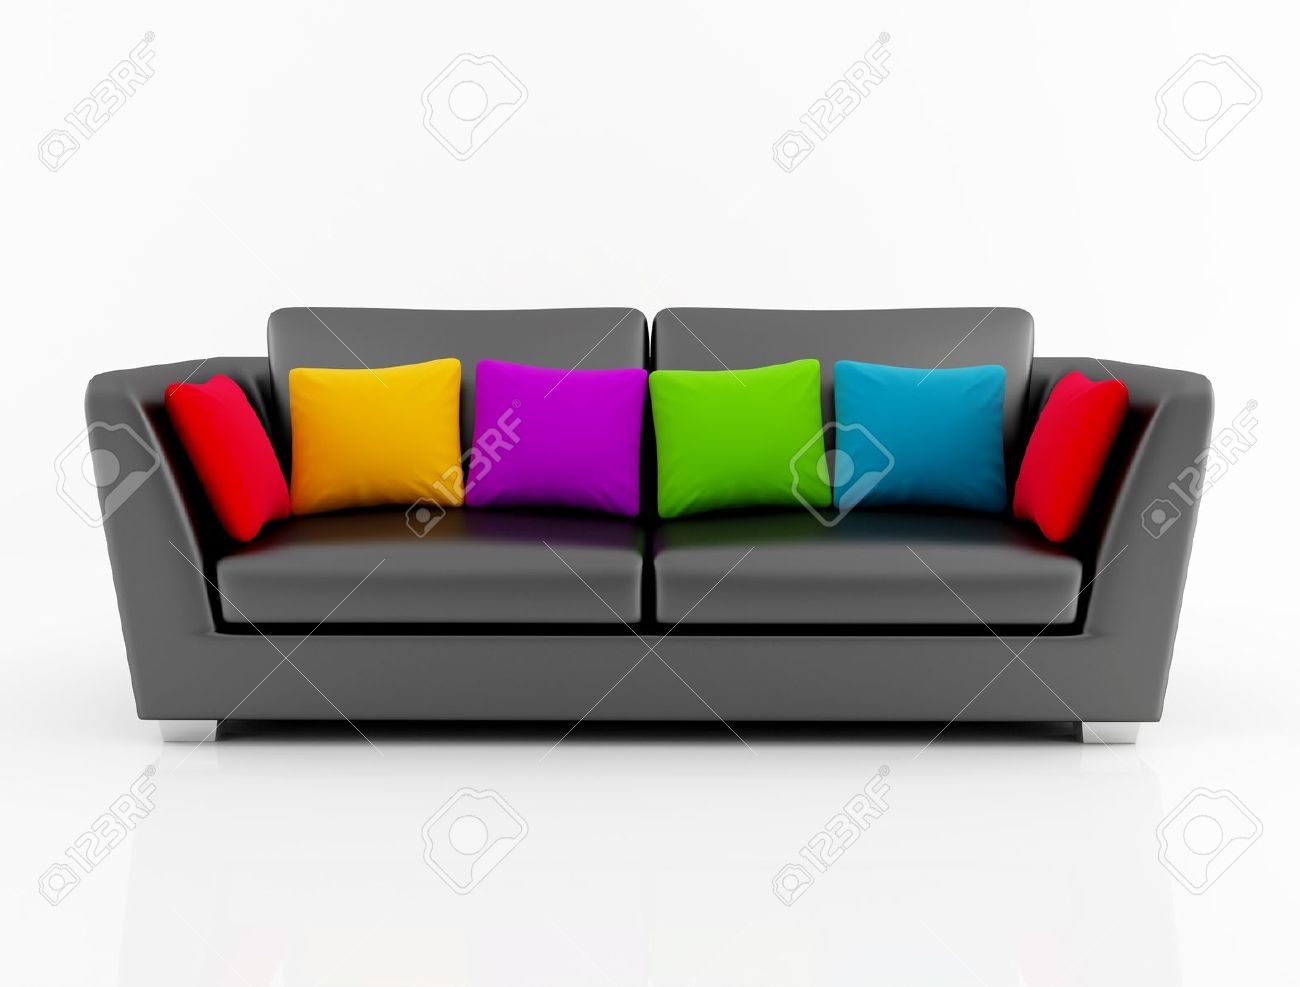 Black Leather Couch With Colored Cushion Rendering Stock Photo